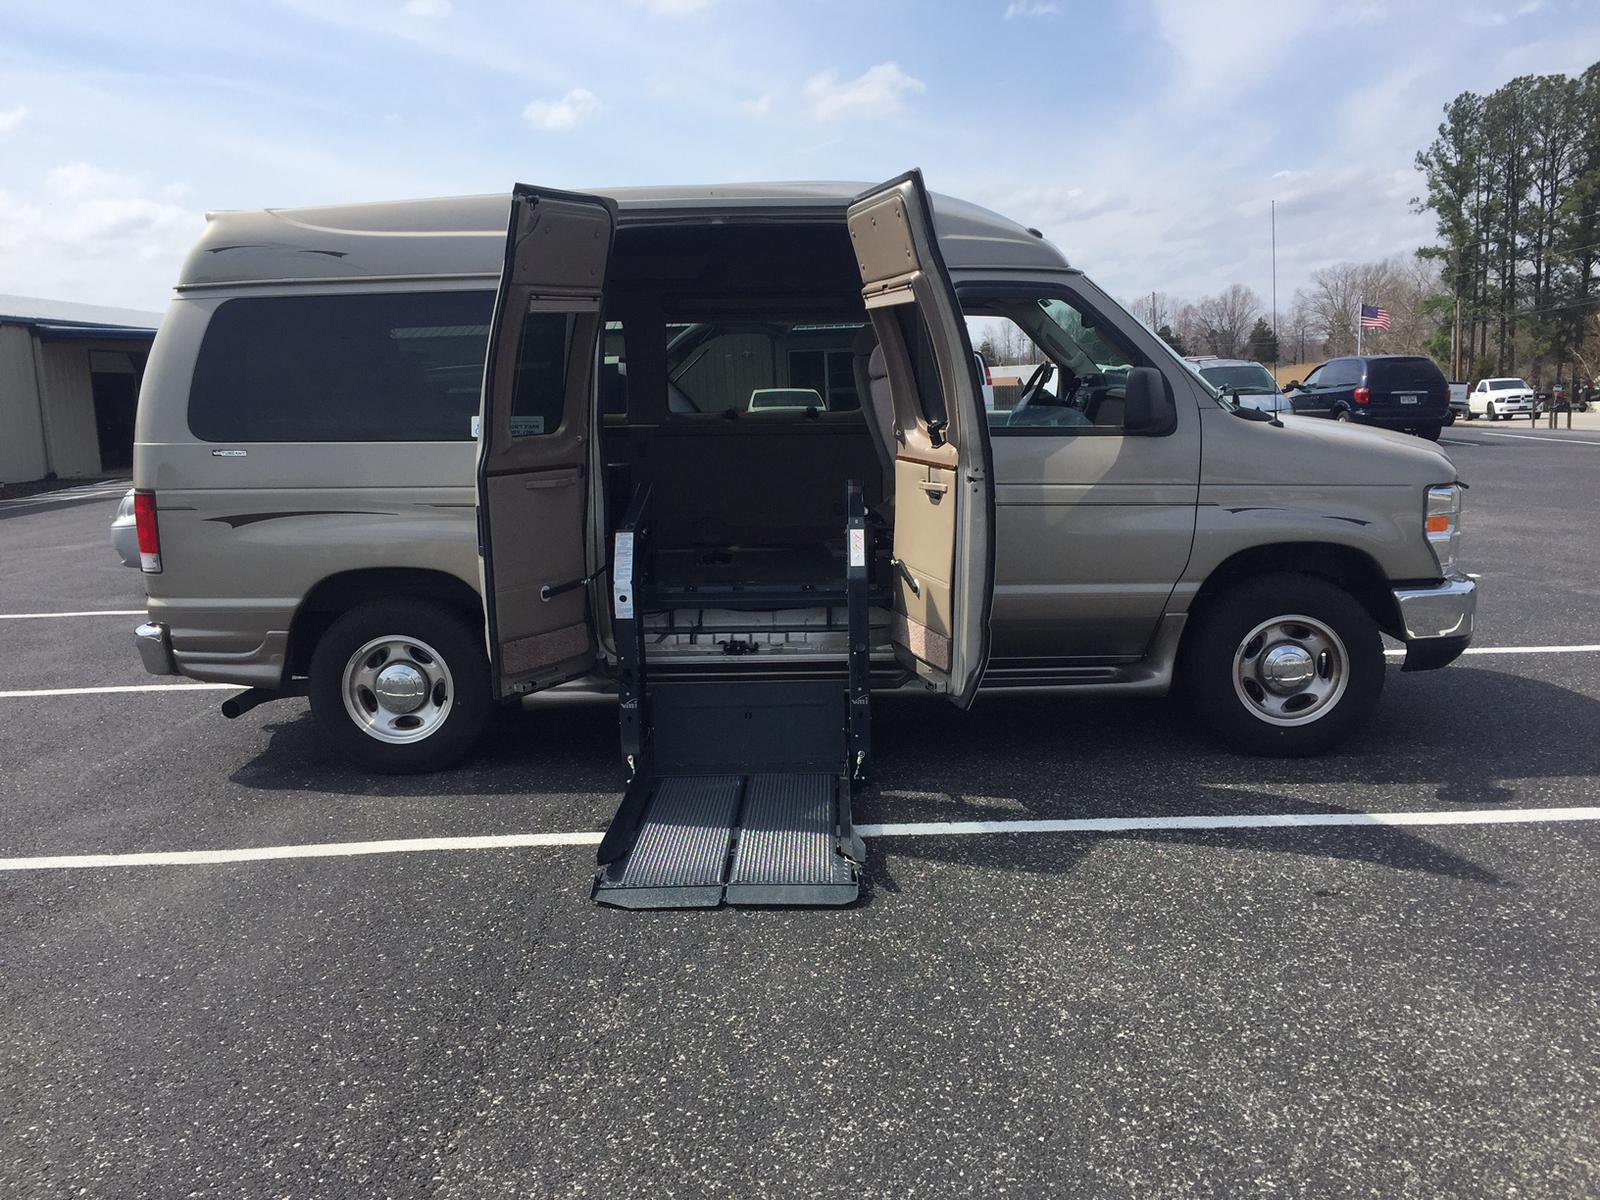 2014 ford ford e150 tuscany rr rd conversion ricon clearway power door ops apple independence mobility cookeville tn 877 528 5788